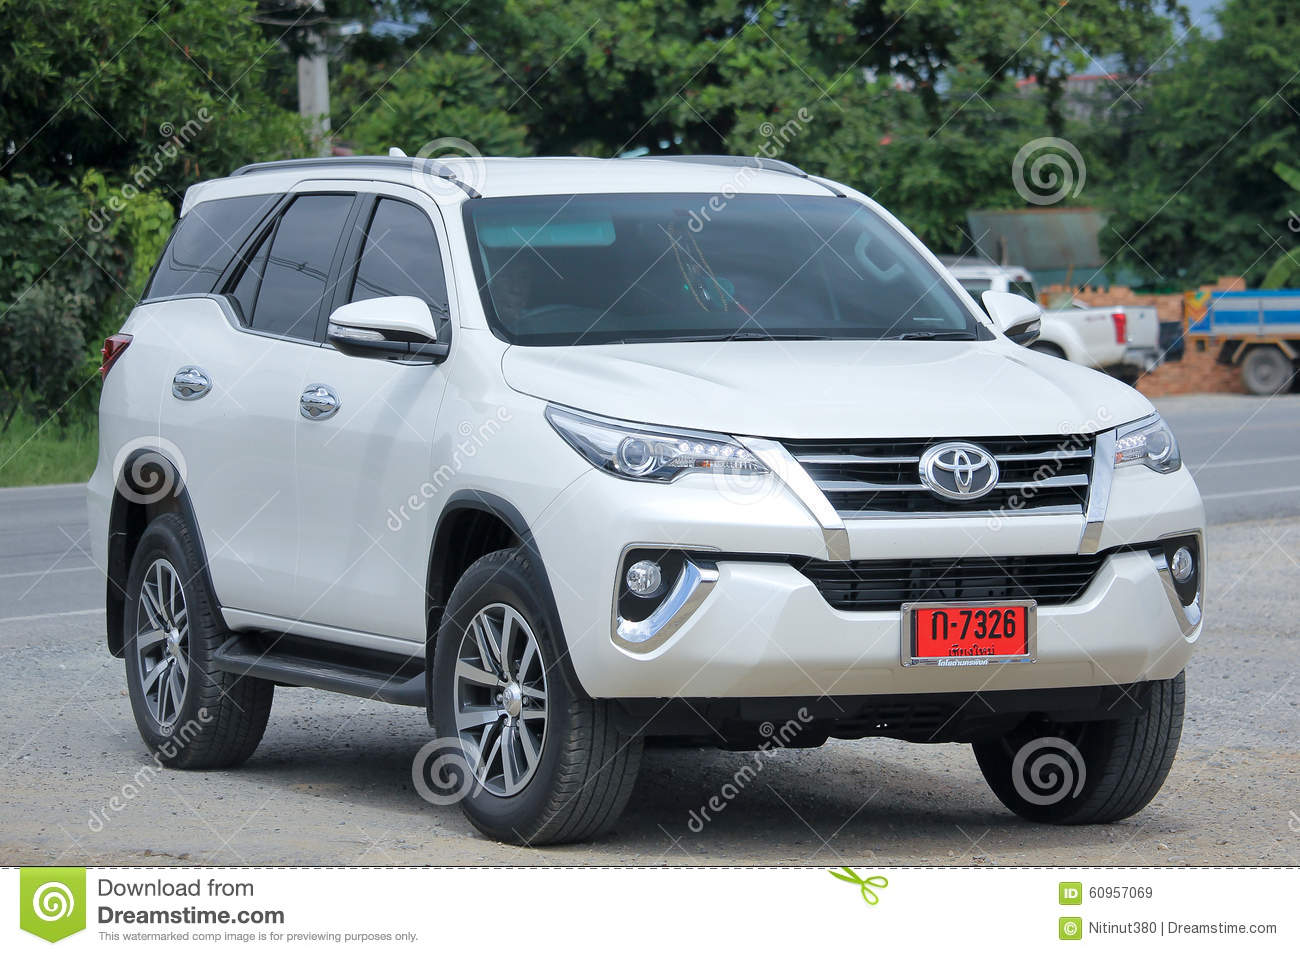 privat suv auto toyota fortuner redaktionelles stockbild bild von stra e reisen 60957069. Black Bedroom Furniture Sets. Home Design Ideas